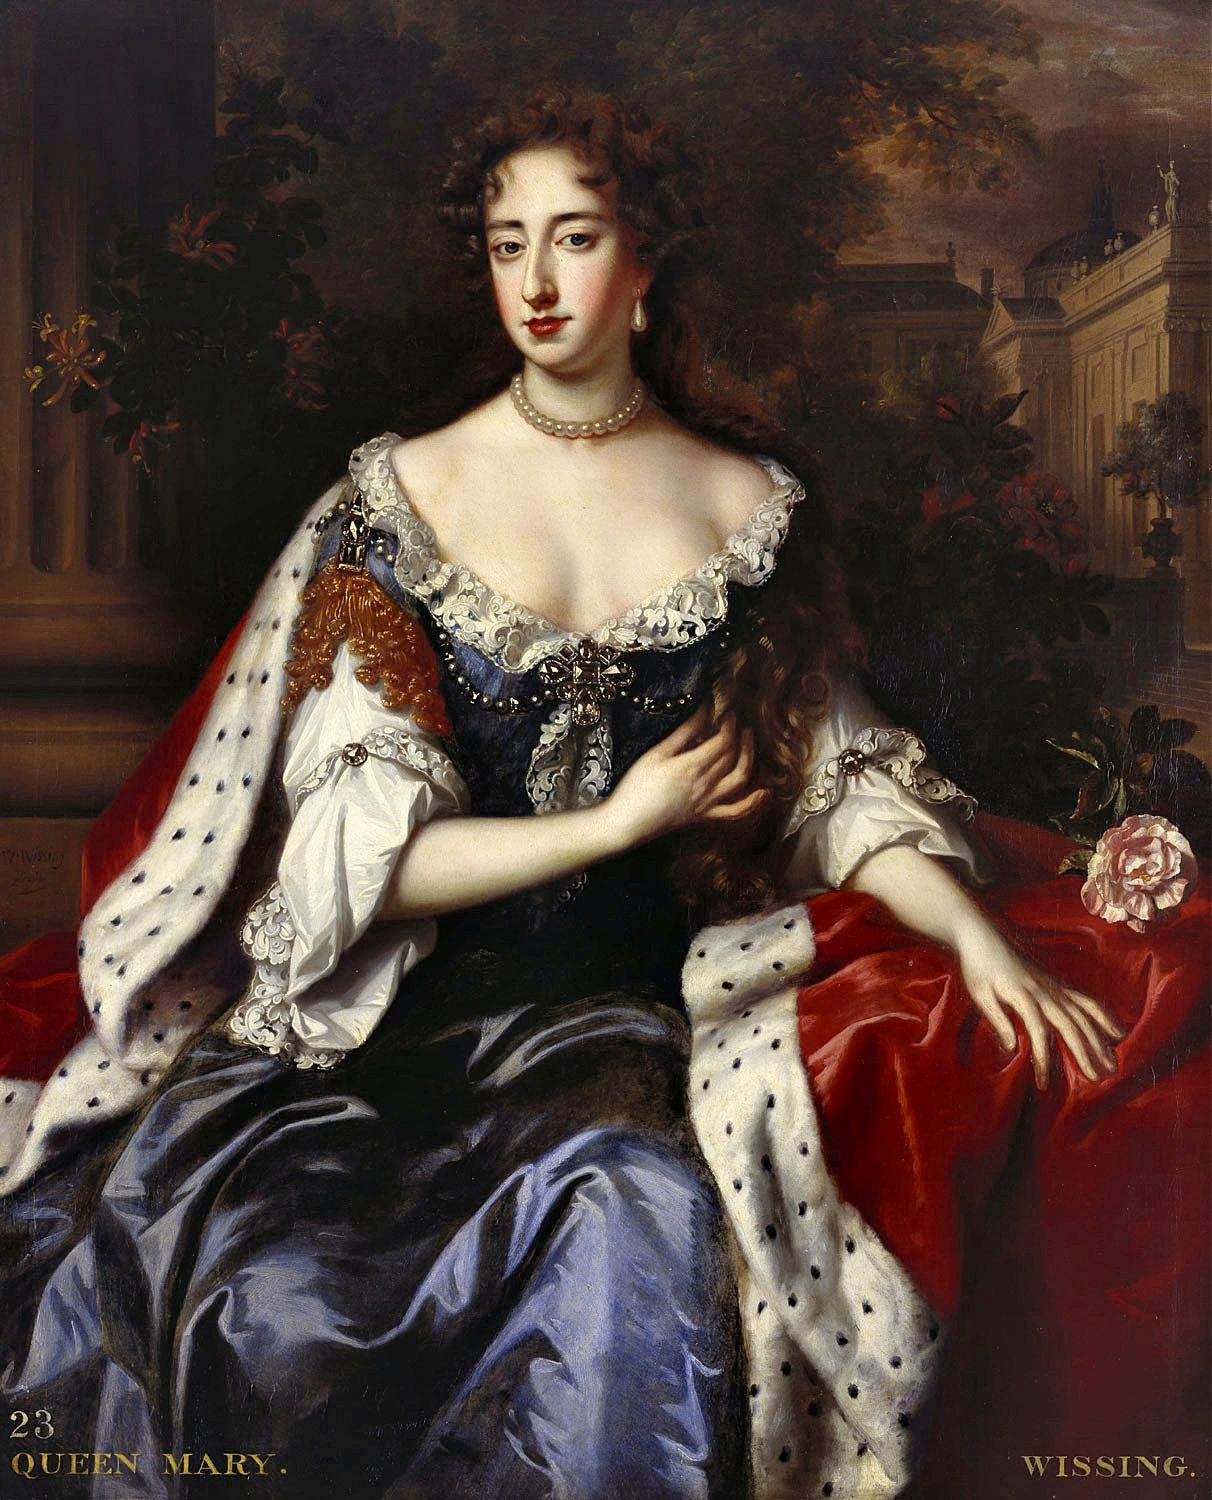 Queen Mary II by William Wissing